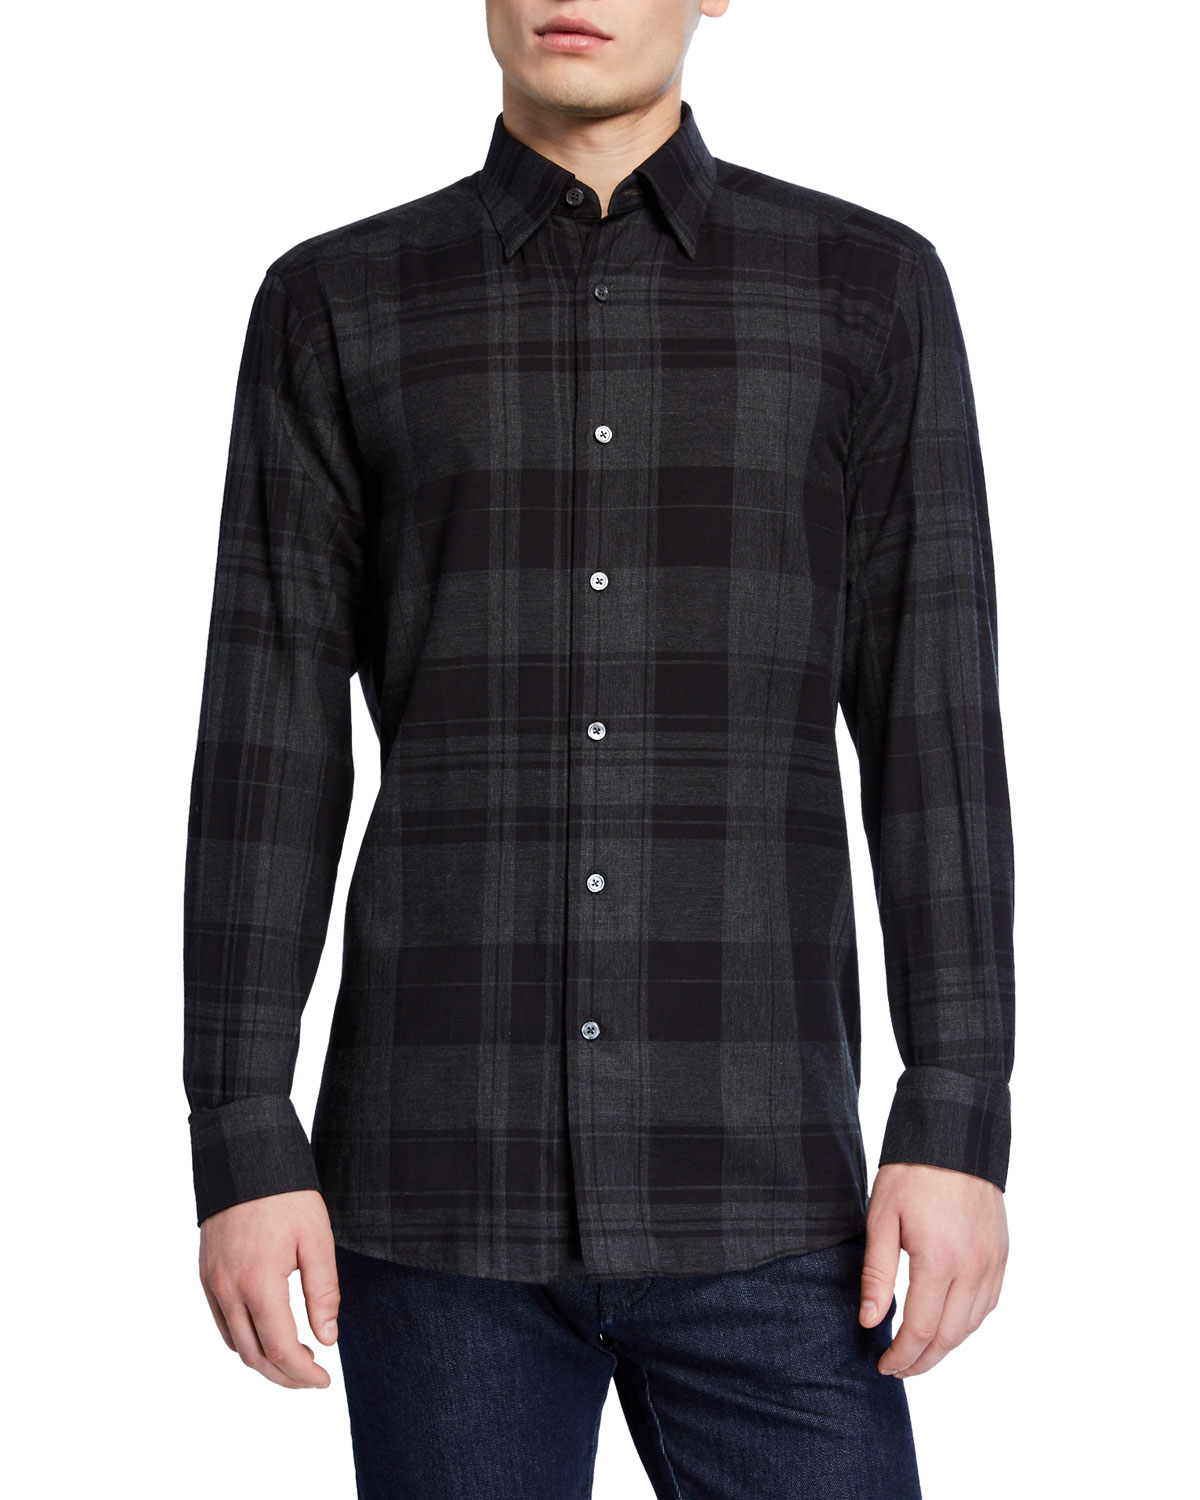 Ermenegildo Zegna T-shirts MEN'S LARGE PLAID WASHED SPORT SHIRT